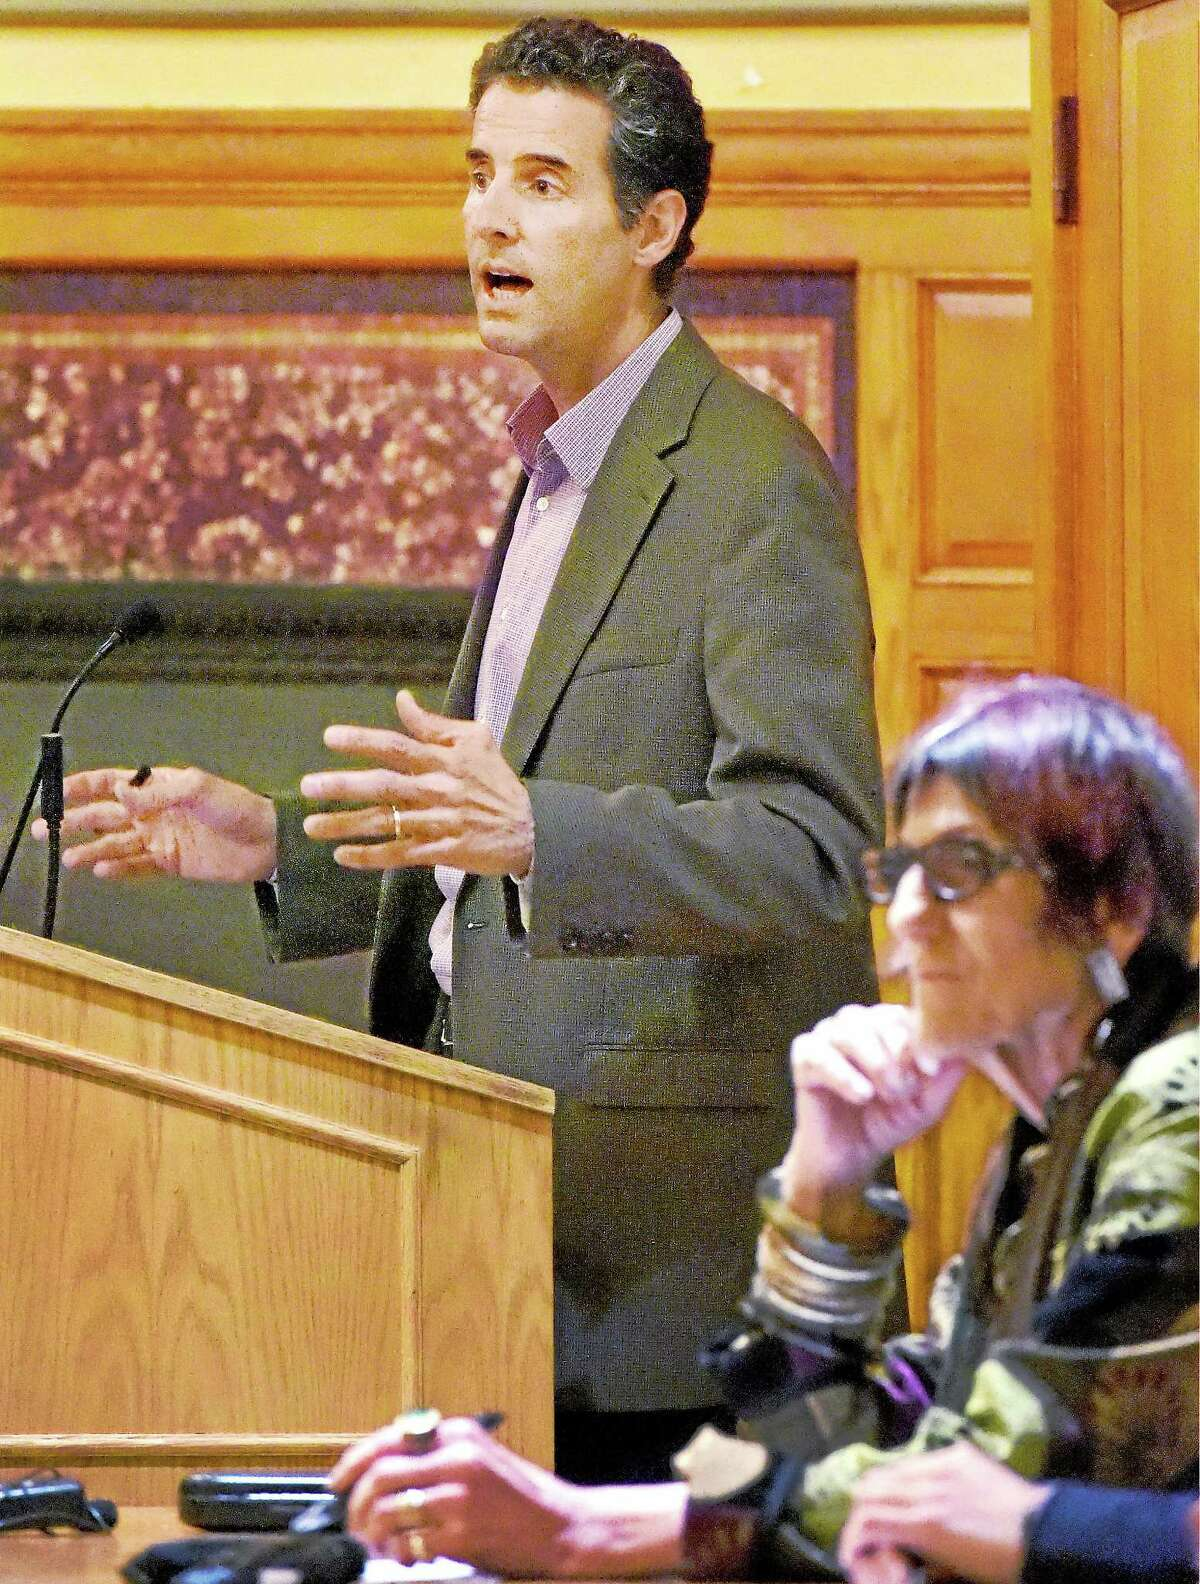 (Peter Hvizdak - New Haven Register) ¬ U.S. Representative John Sarbanes (D-MD), left, and Rosa DeLauro (D-CT),right, host a roundtable discussion on H.R. 20, the Government By The People Act, at Yale University's Linsly-Chittenden Hall Monday evening, April 20, 2015. ¬